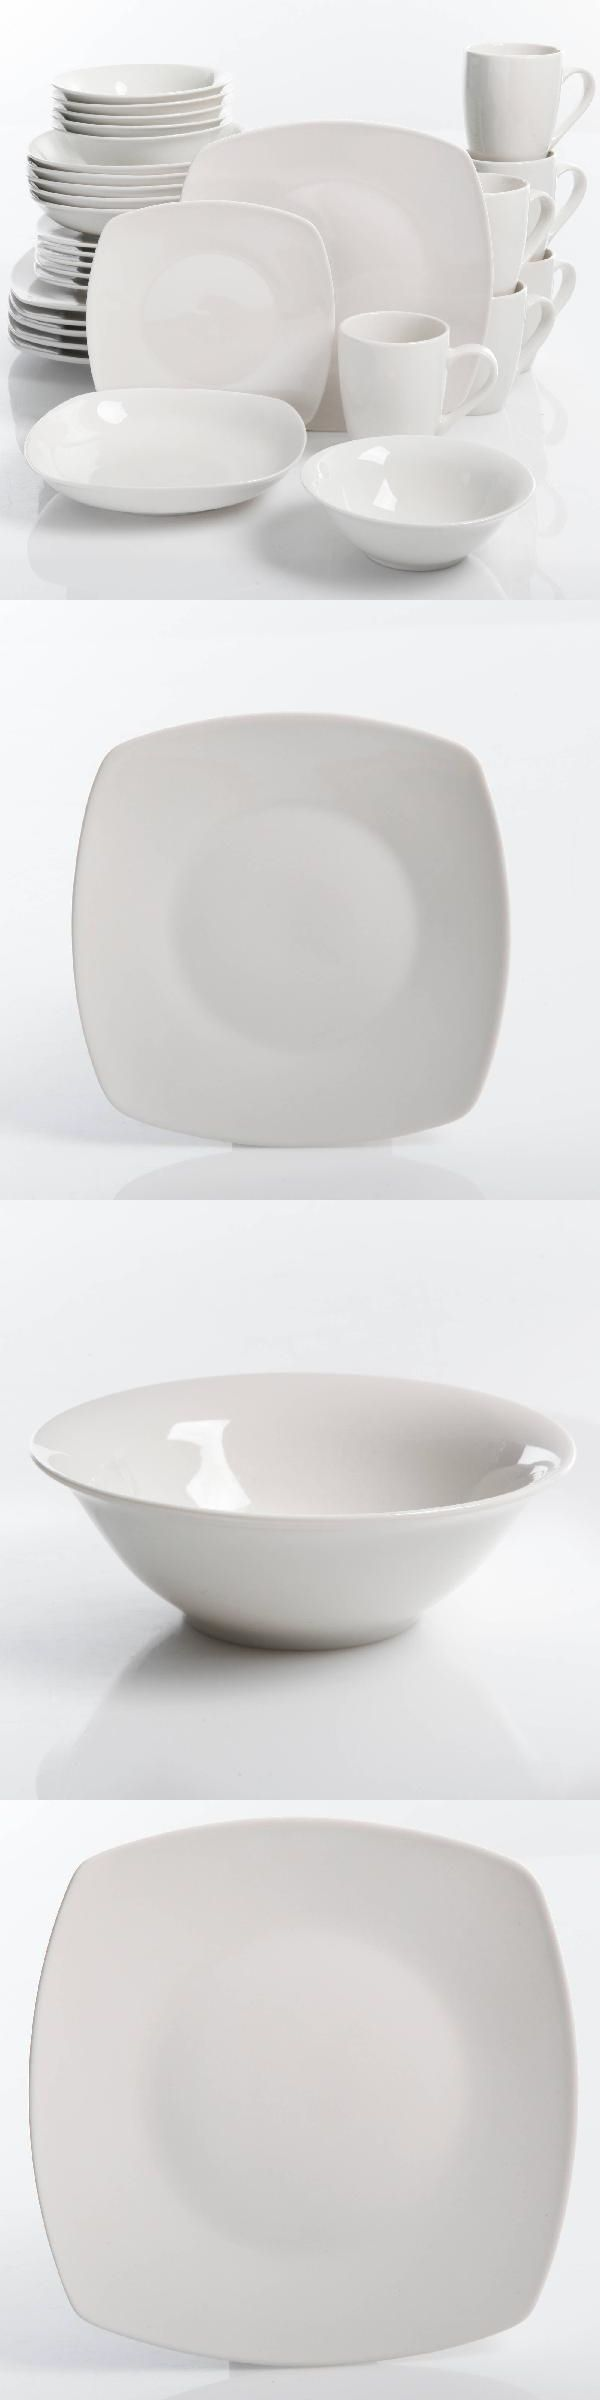 ab0259daa127e Dinner Service Sets 36032  30-Piece Porcelain Dinnerware Set Square Dinner  Plates Dish Service For 6 White -  BUY IT NOW ONLY   46.07 on  eBay  dinner  ...